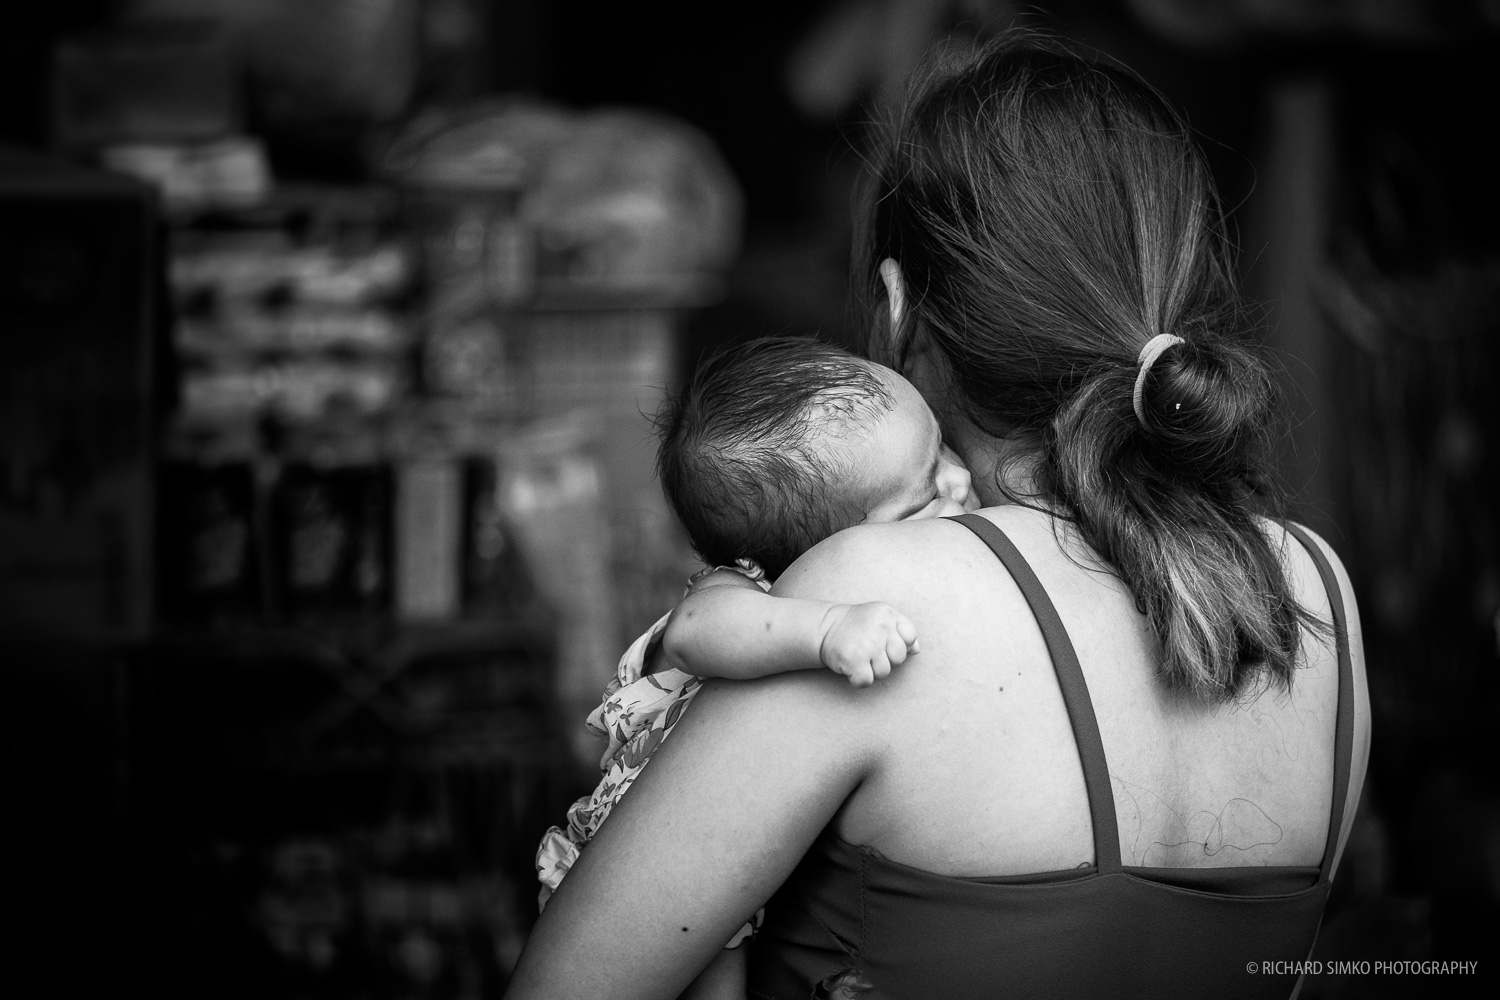 Woman stepping into the shop with baby sleeping on her shoulder. Photographed in Kandal market area in Phnom Penh. Fujifilm X-T1, Fujinon 50-140mm  2.8